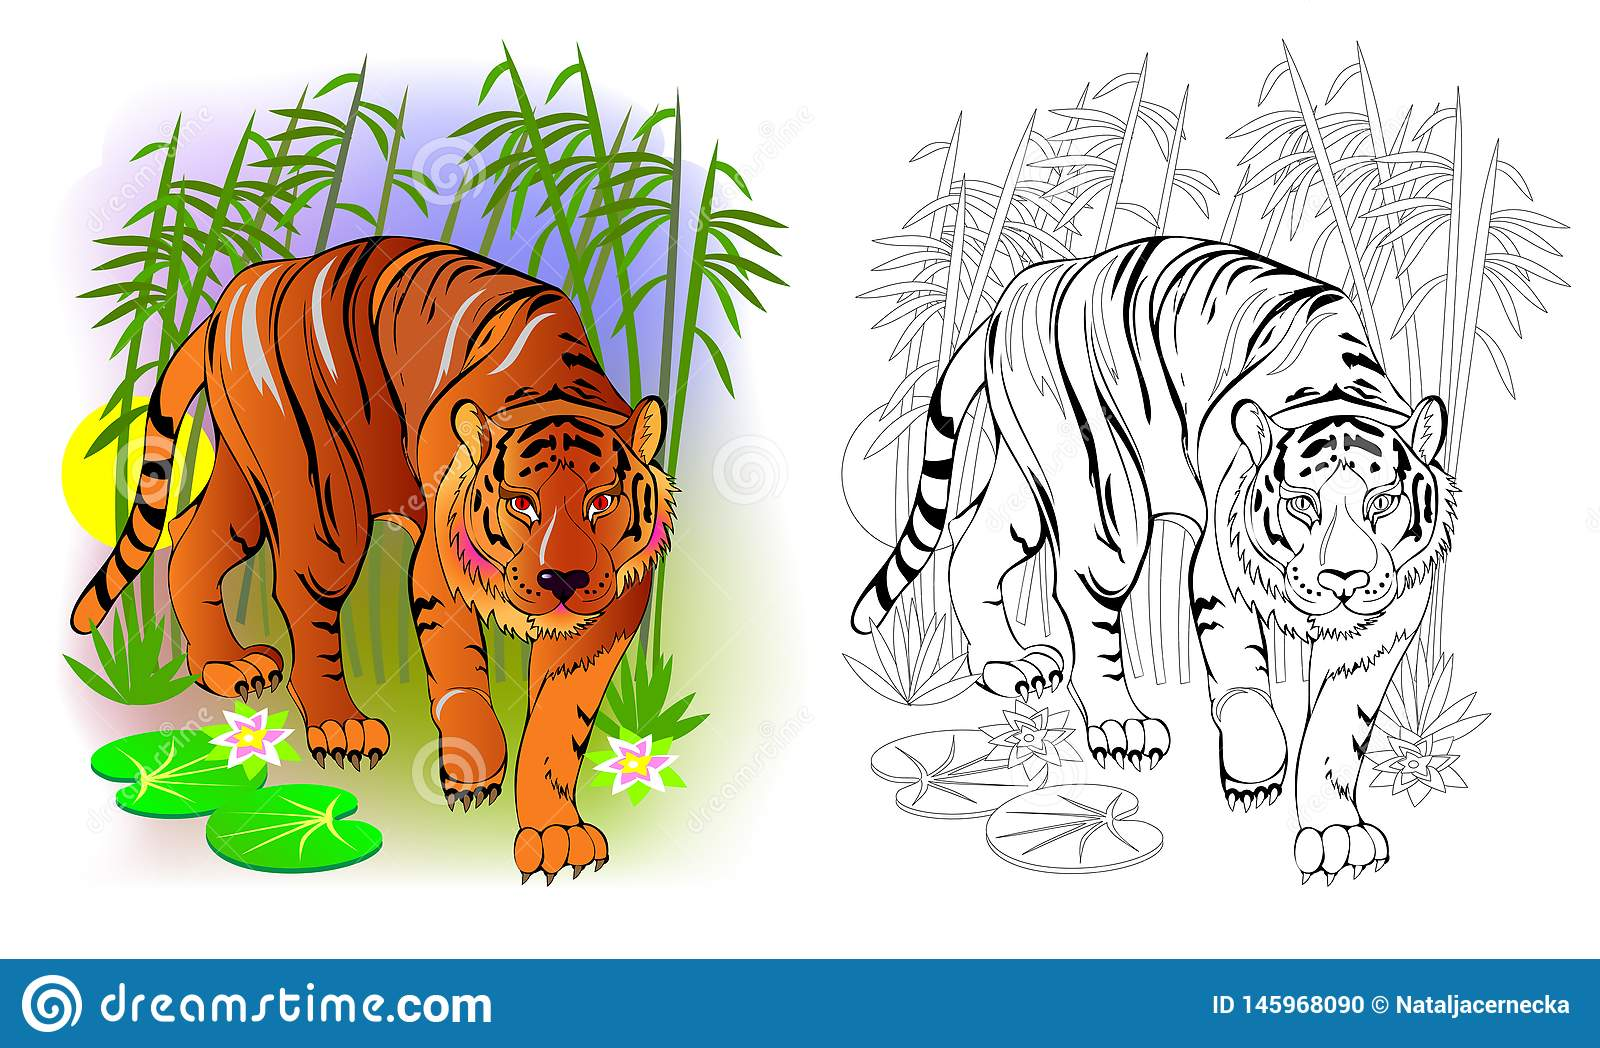 Fantasy Illustration Of Cute Tiger In The Jungle Colorful